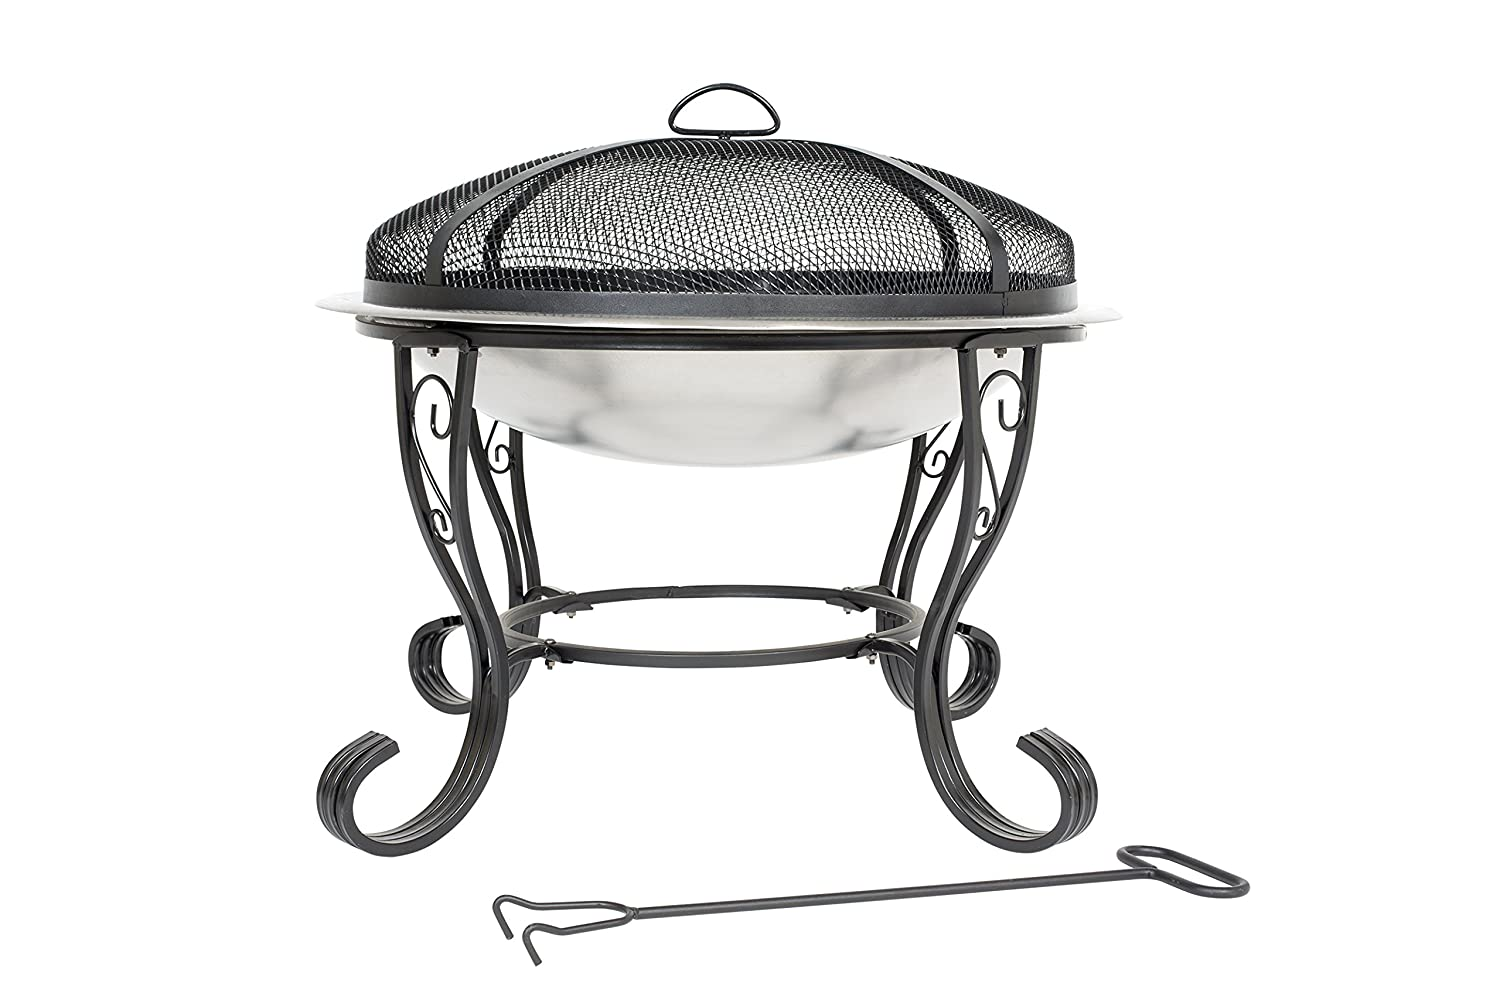 Stainless Steel Firebowl with mesh cover 61cm Buchanan Europe Ltd 58112 505502558112 Garden Furniture